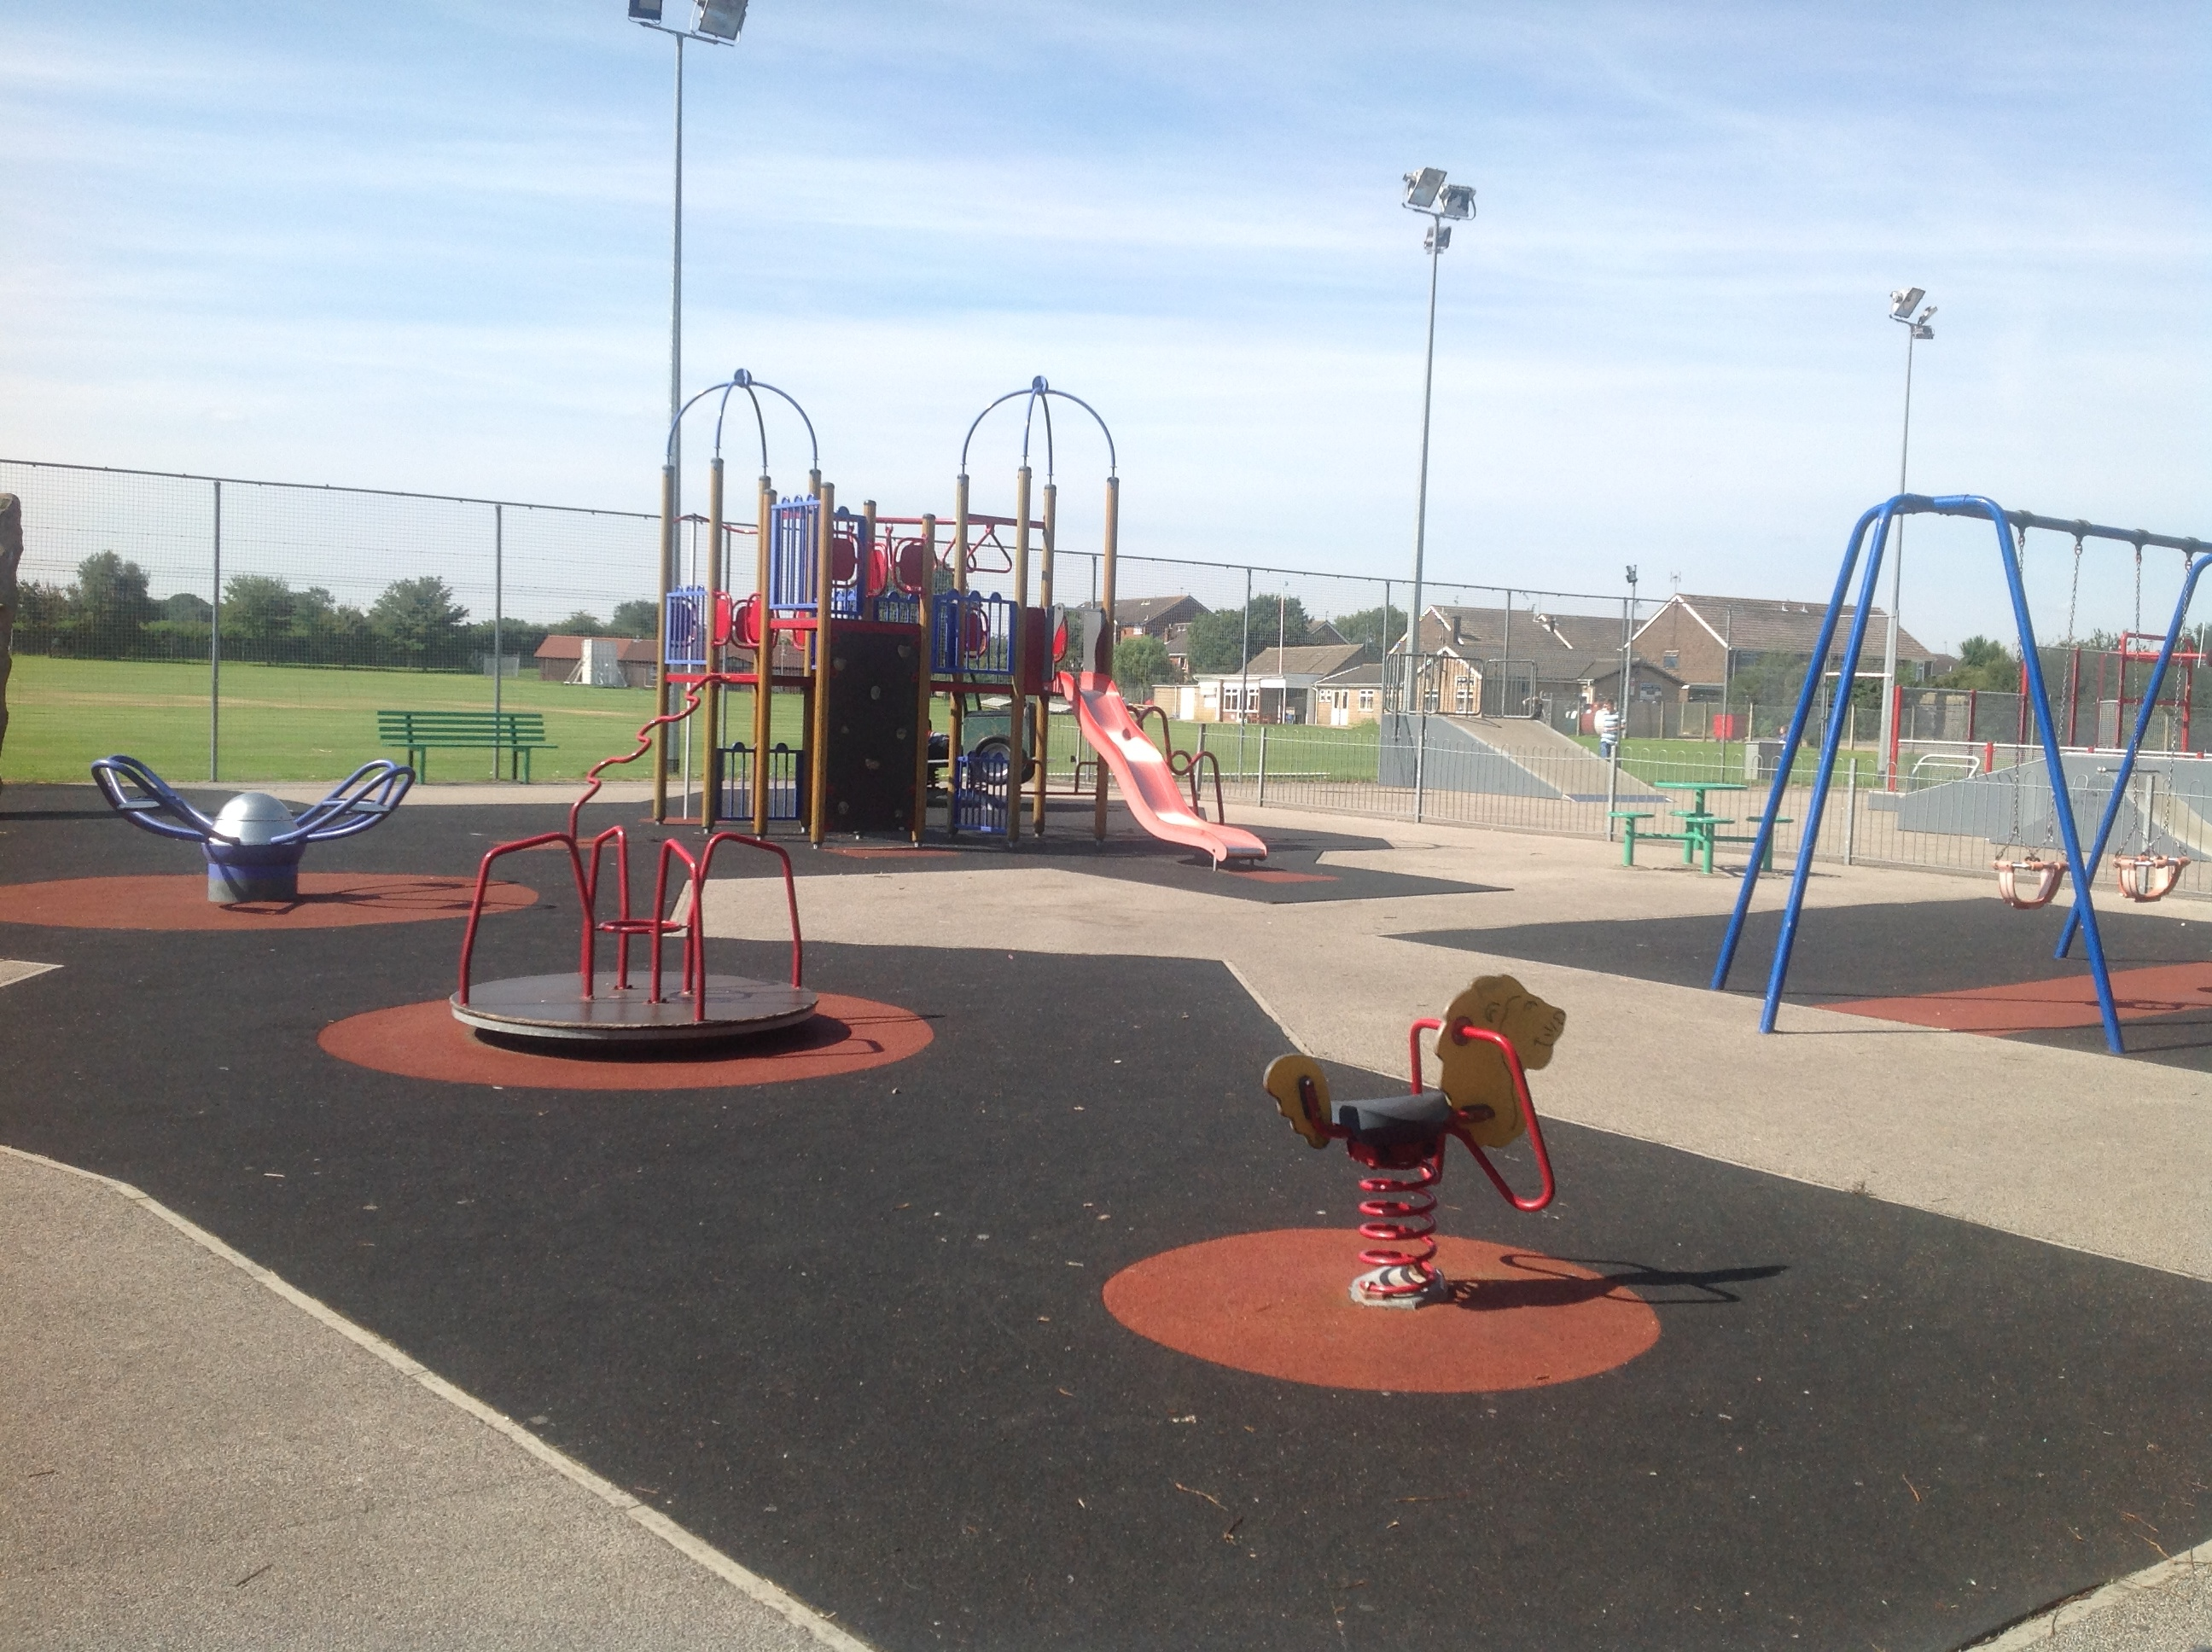 New children's playground